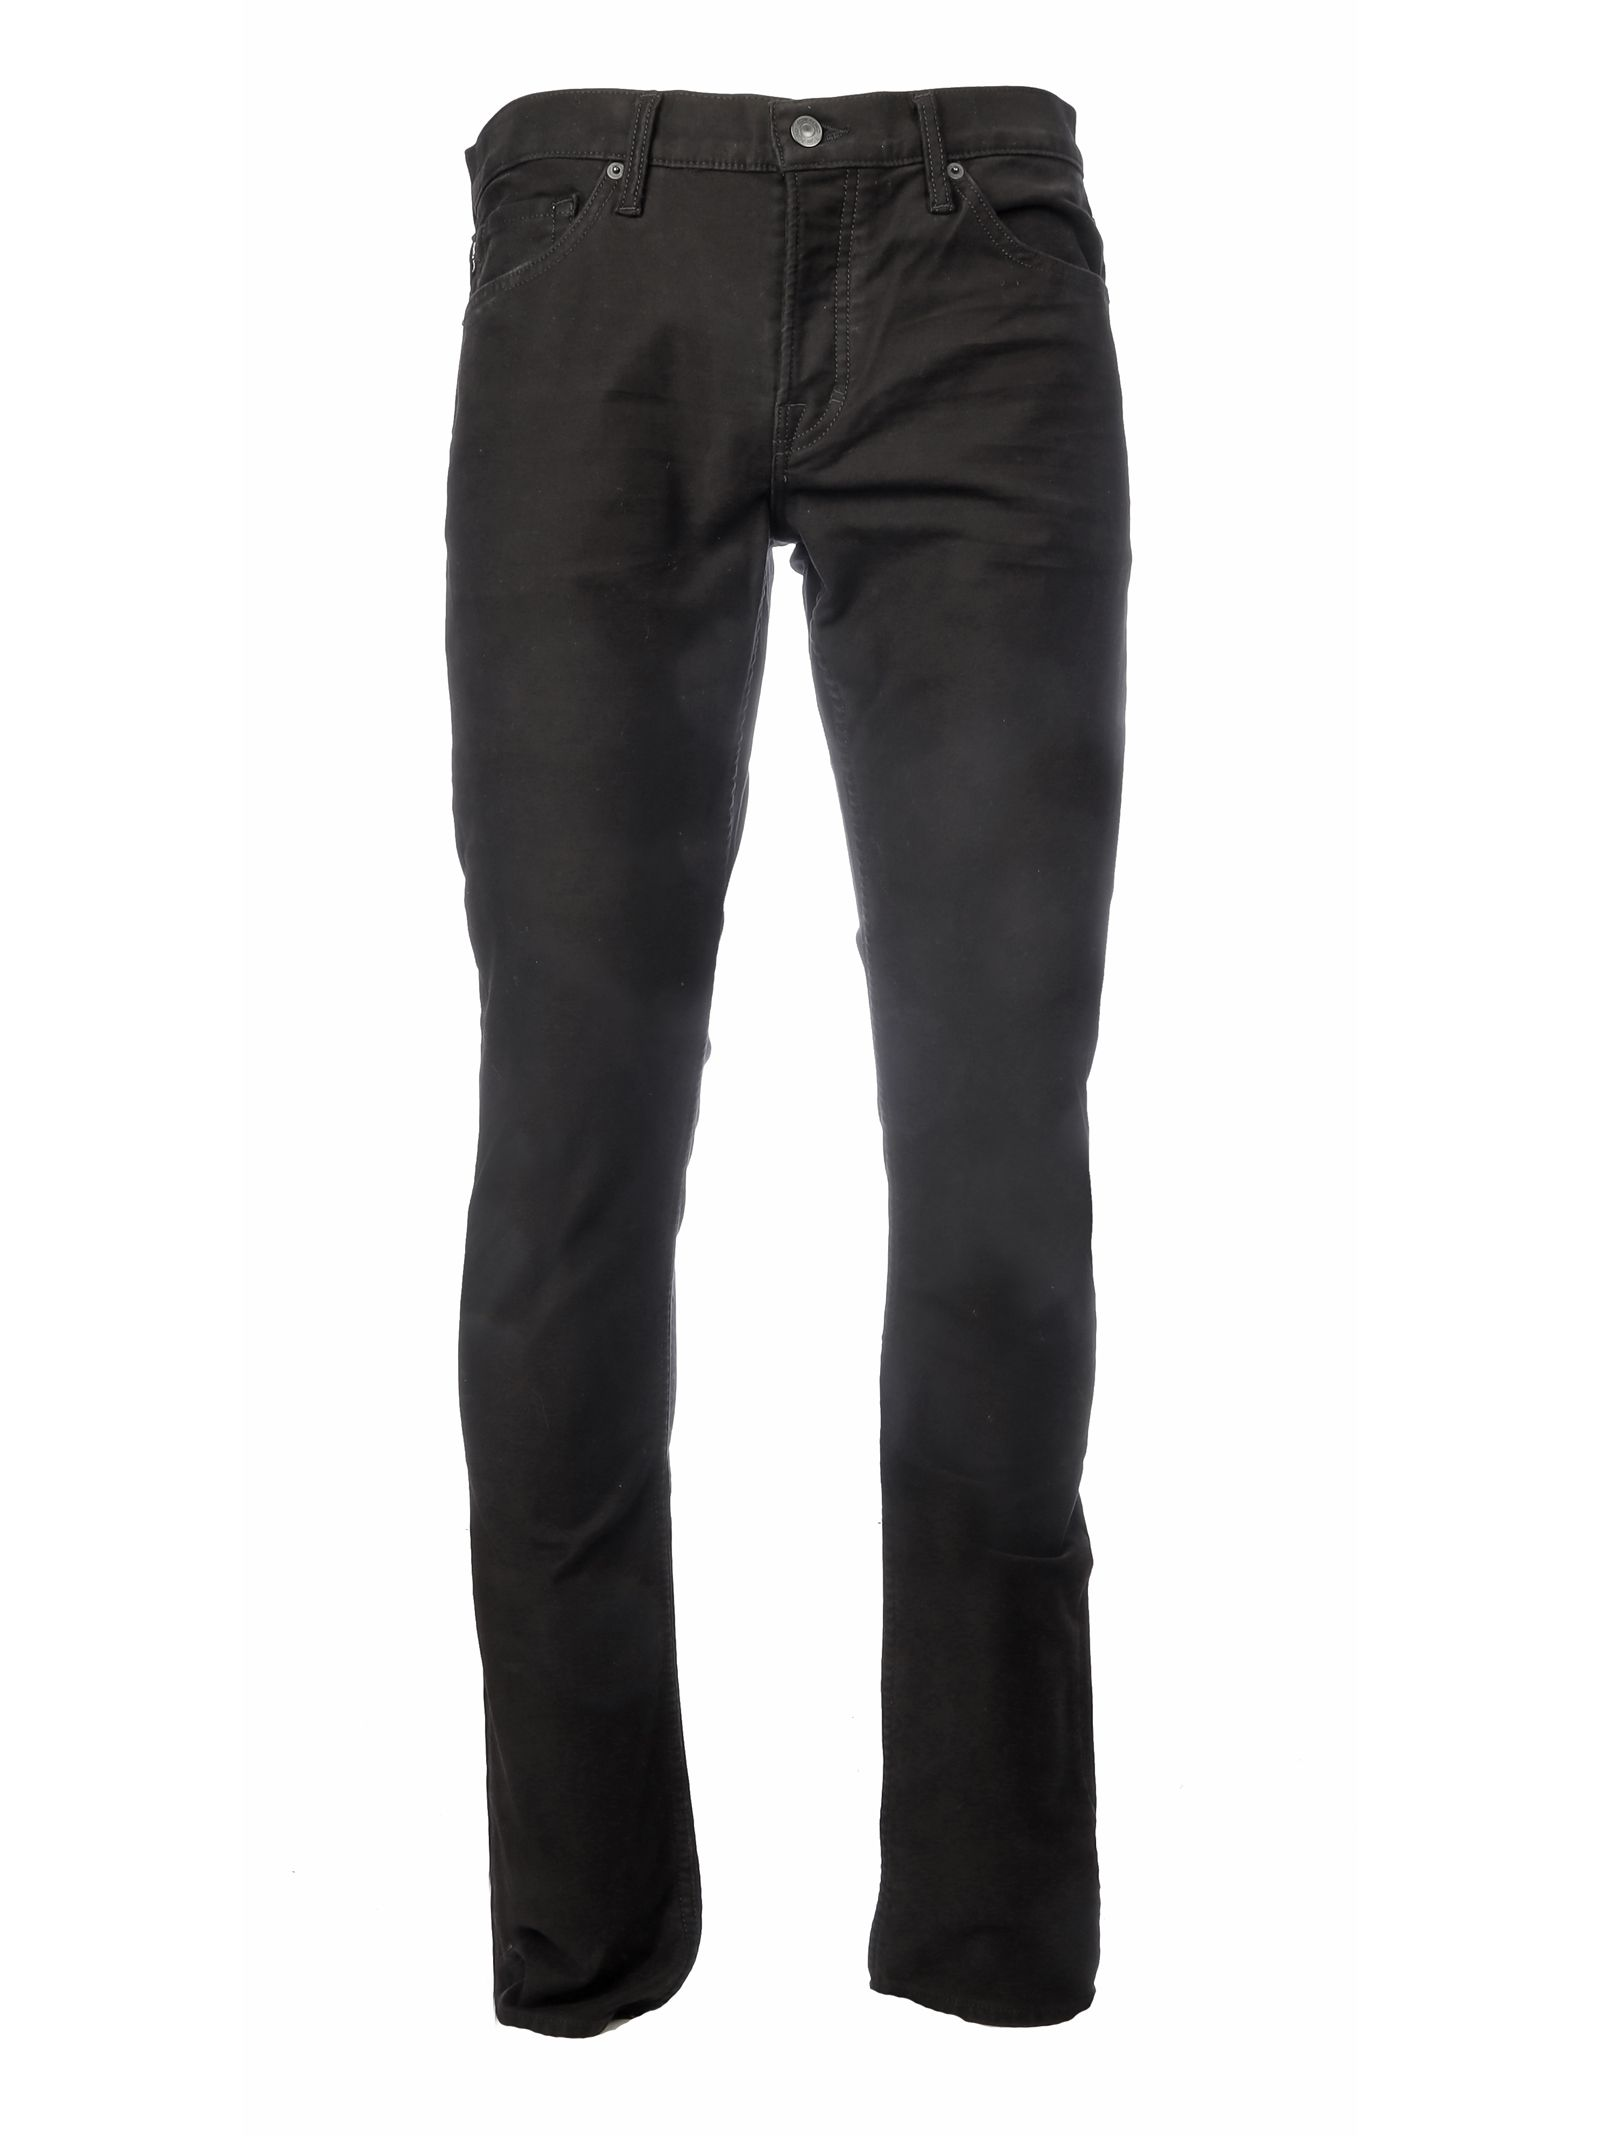 Tom Ford Black Cotton Jeans